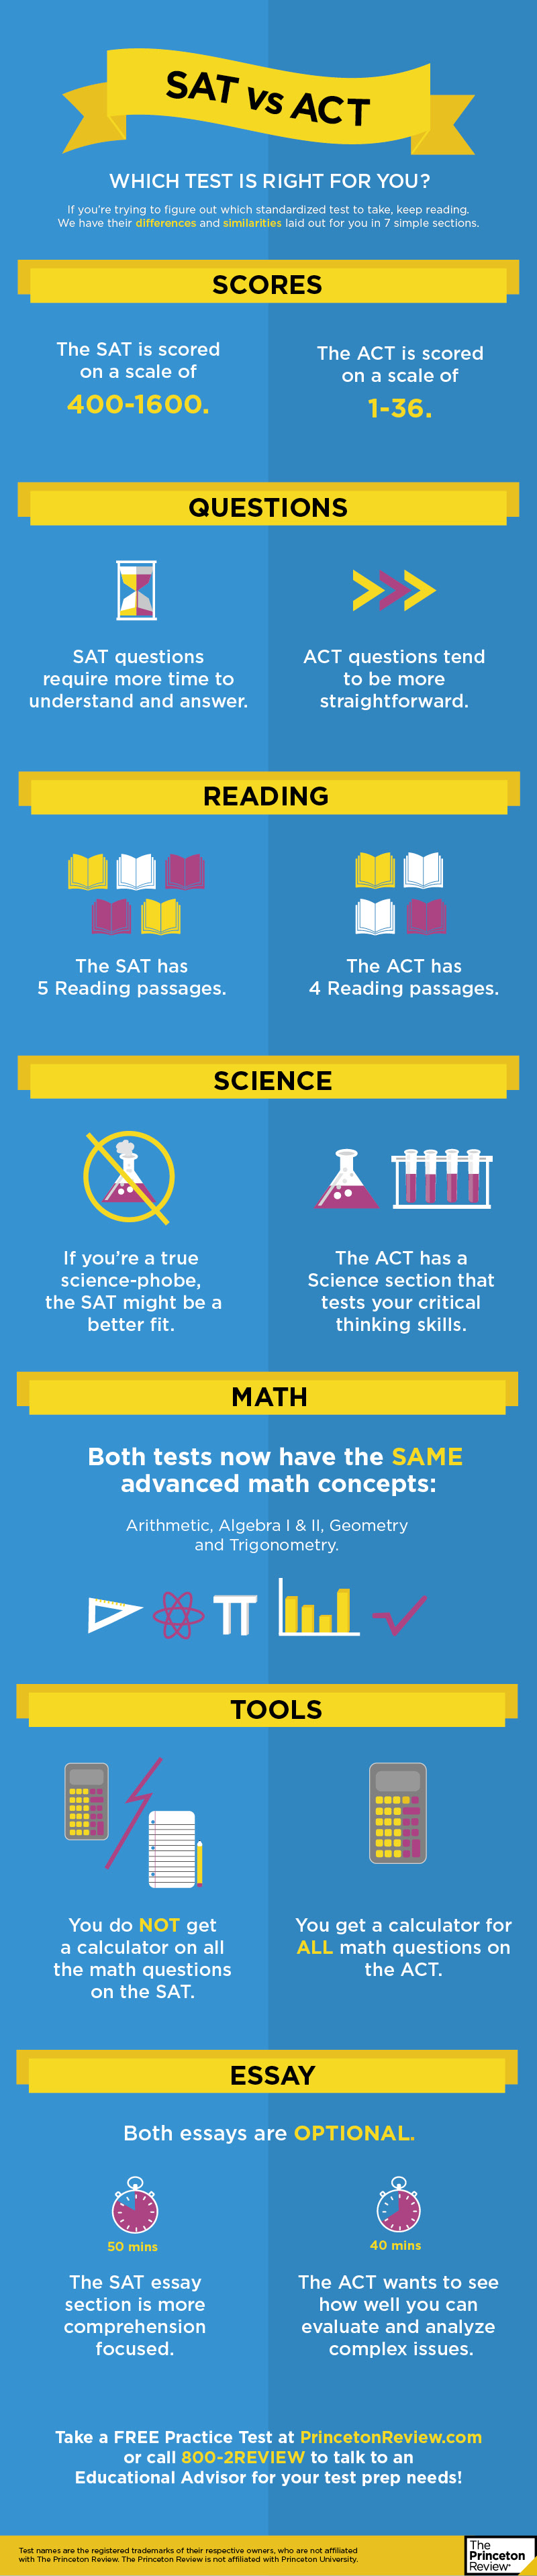 counseling home act sat new sat vs act infographic v2